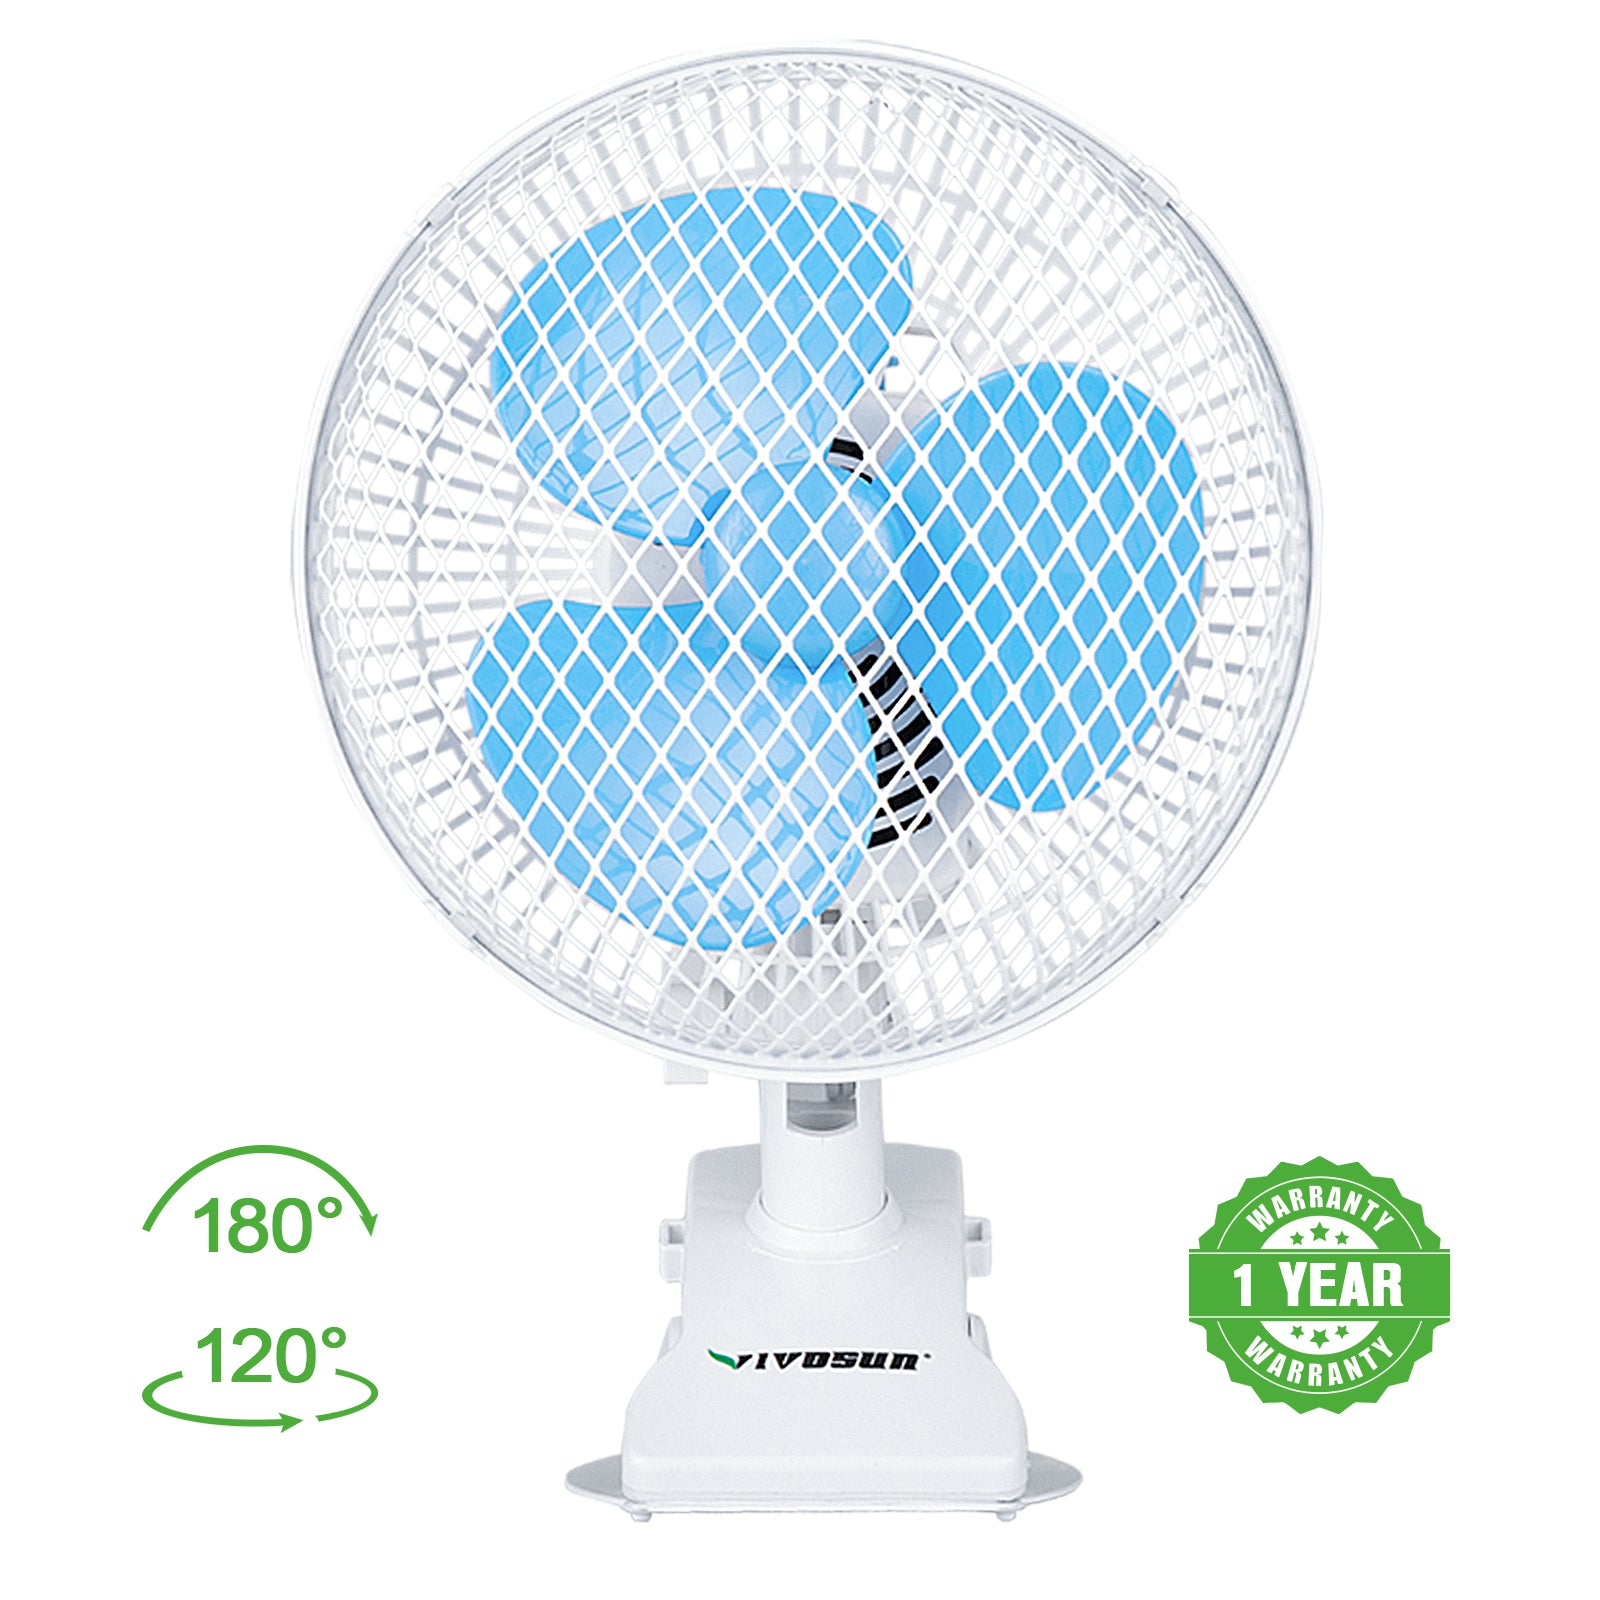 VIVOSUN Clip-On Grow Tent Desk Fan - VIVOSUN